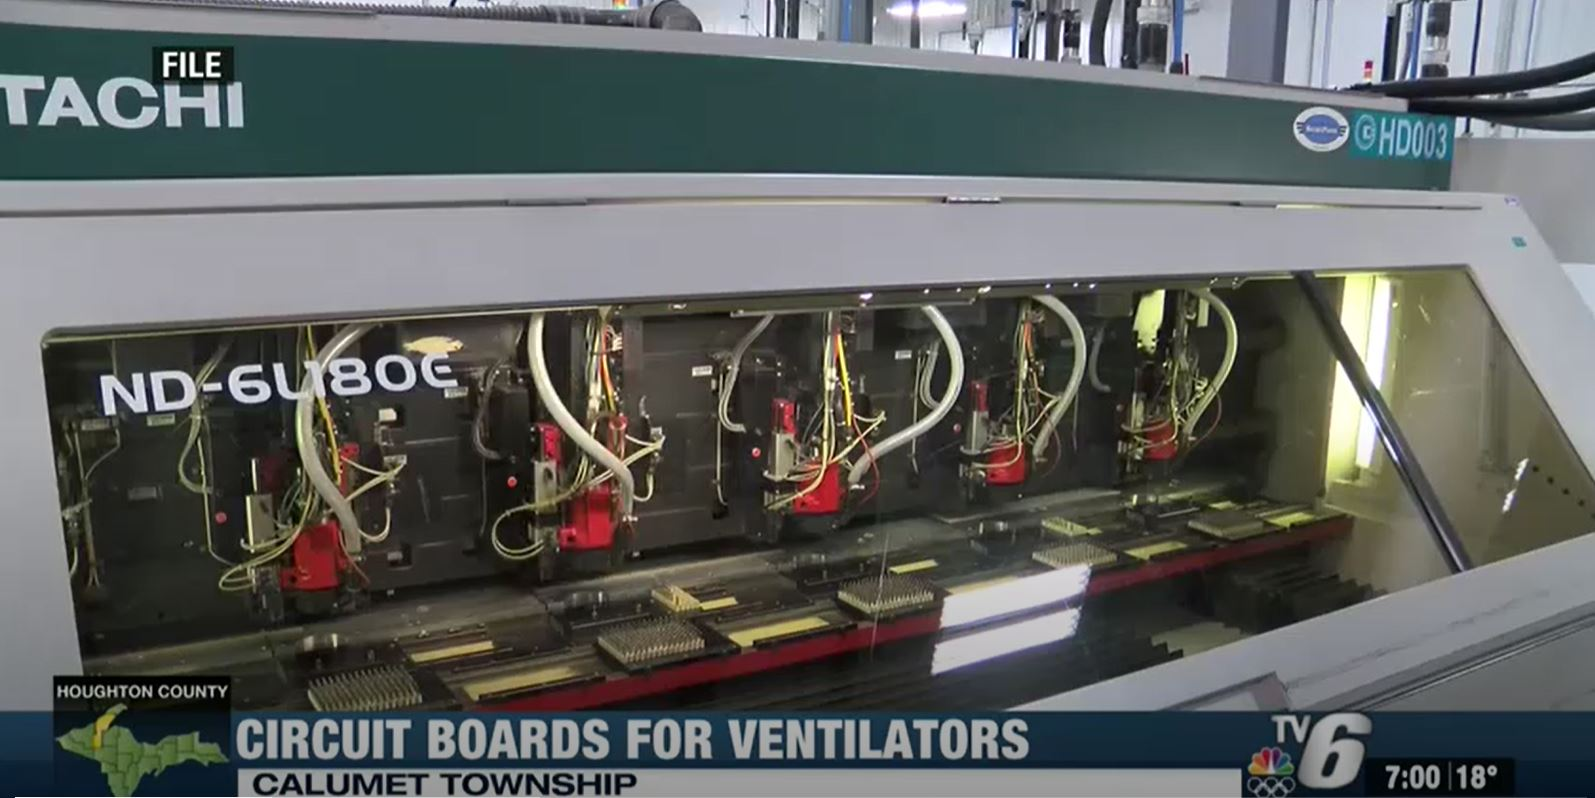 """A screenshot of a machine in the Calumet Electronics facility with the tagline that says, """"Circuit boards for ventilators."""""""